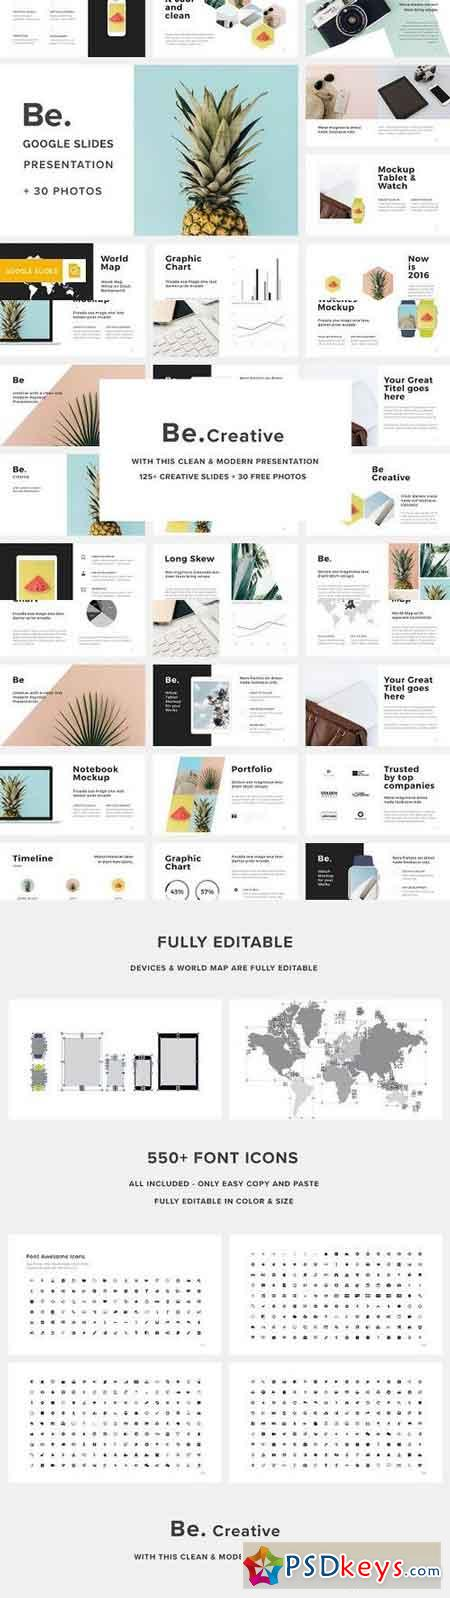 Be google slides template 30photos 1316928 free download google slides template 30photos 1316928 gumiabroncs Image collections